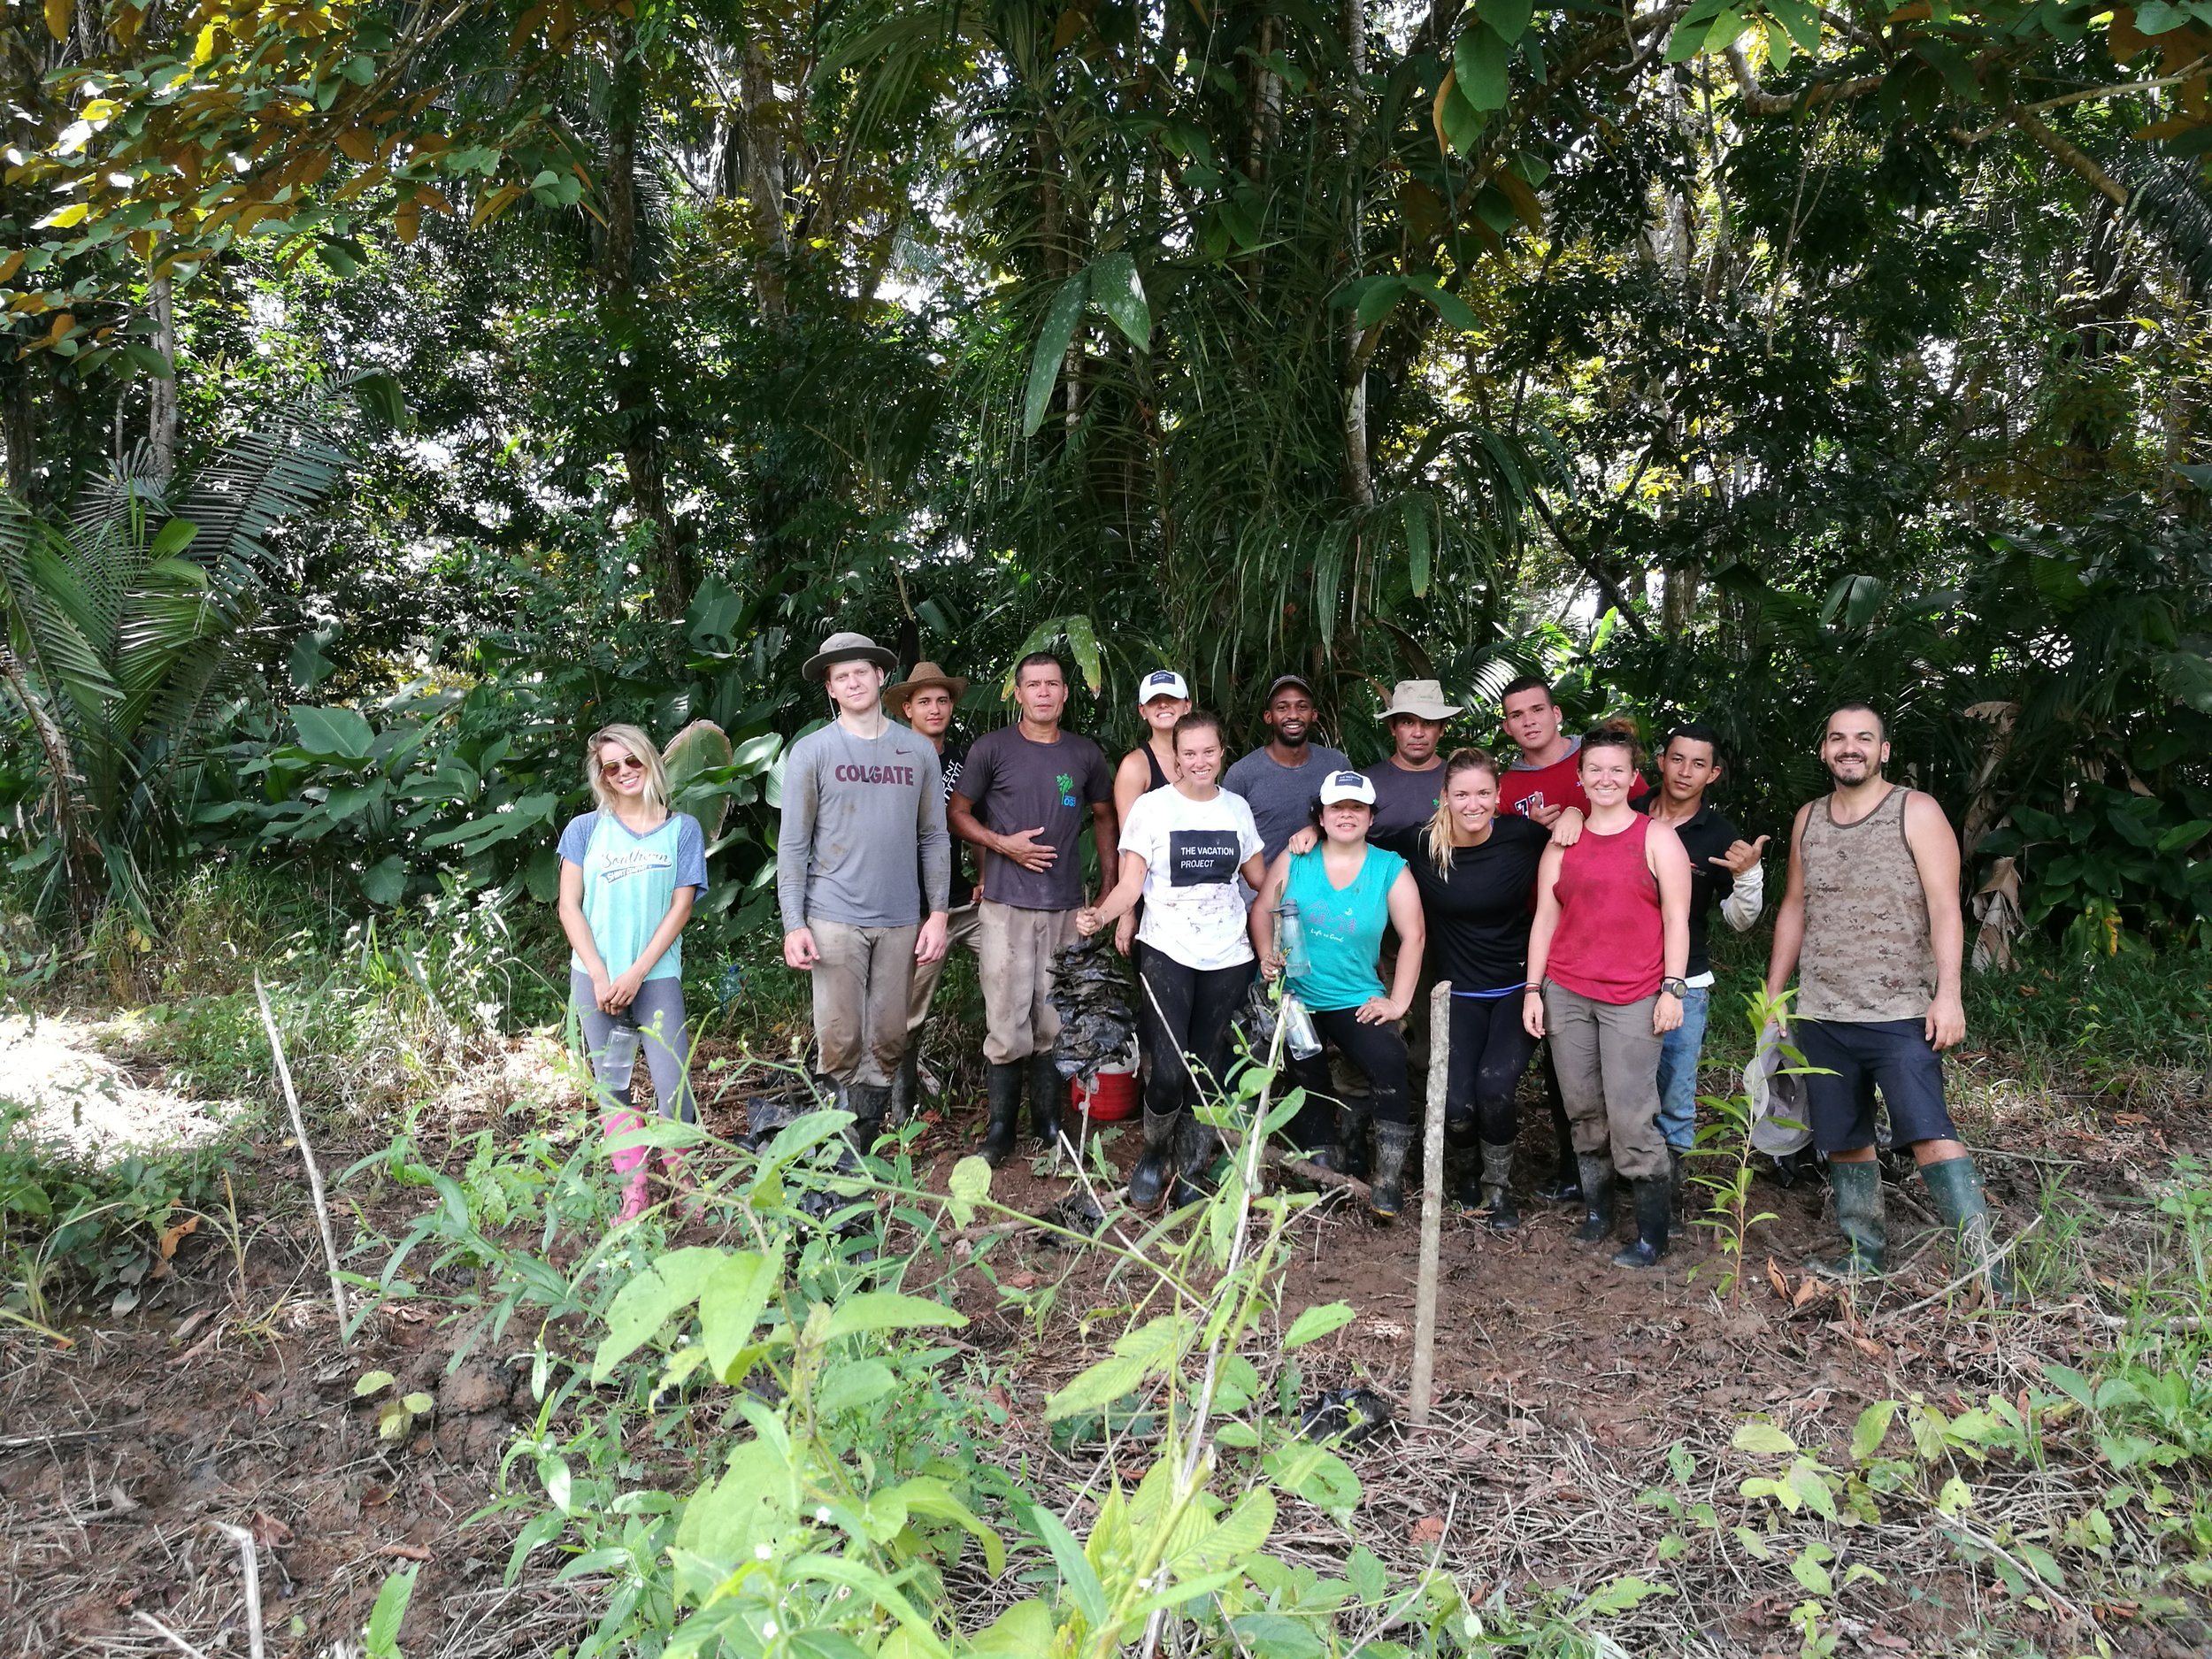 Team TVP after helping Osa Conservation replant the rainforest